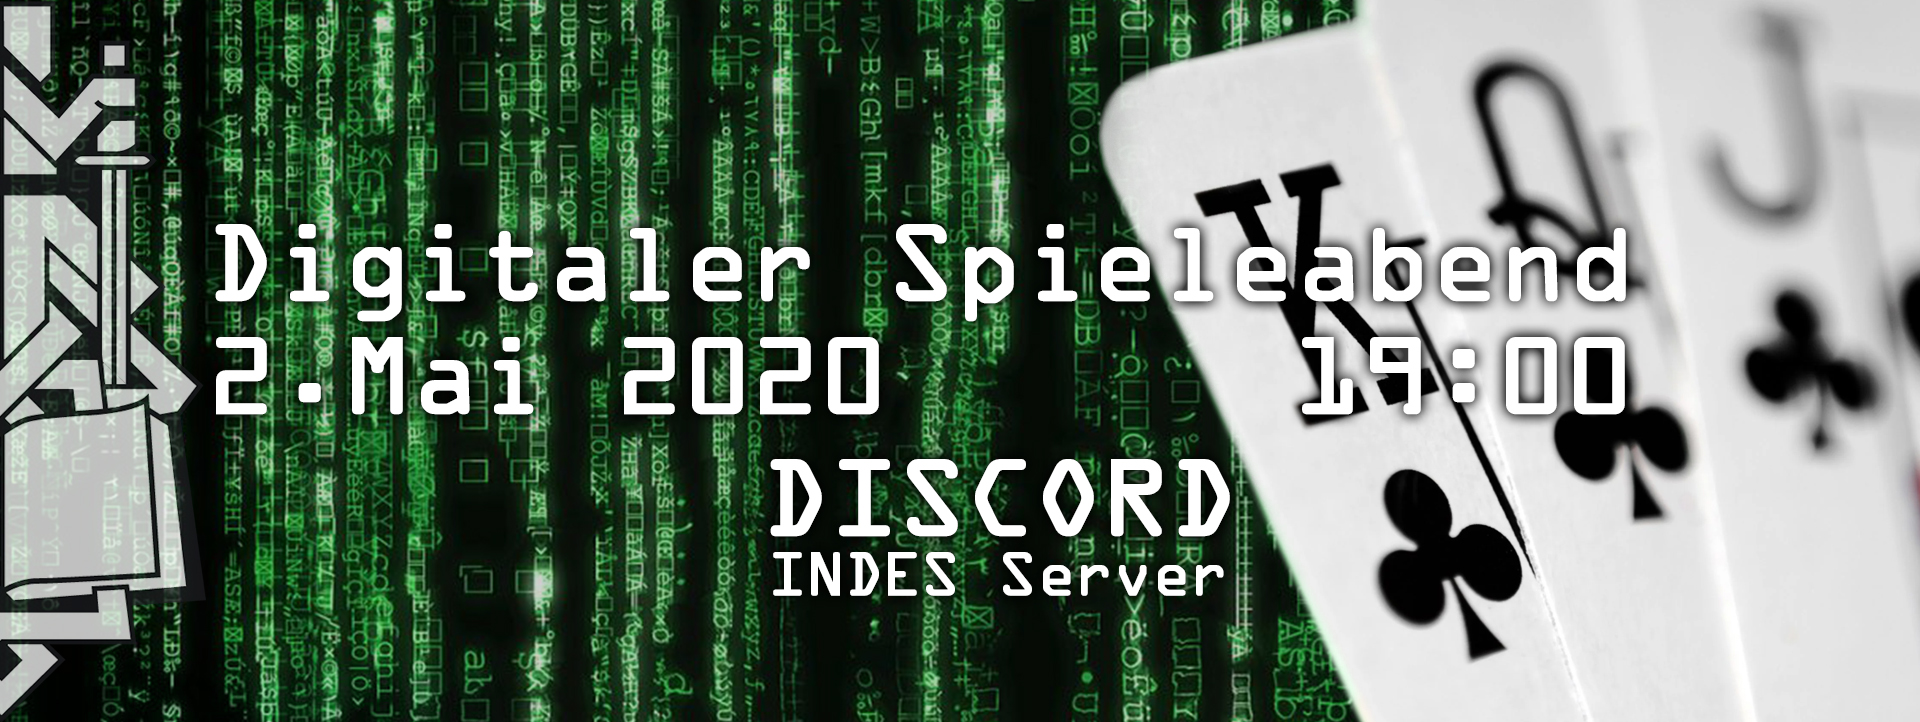 Digitaler Spieleabend Salzburg @ INDES Discord Server